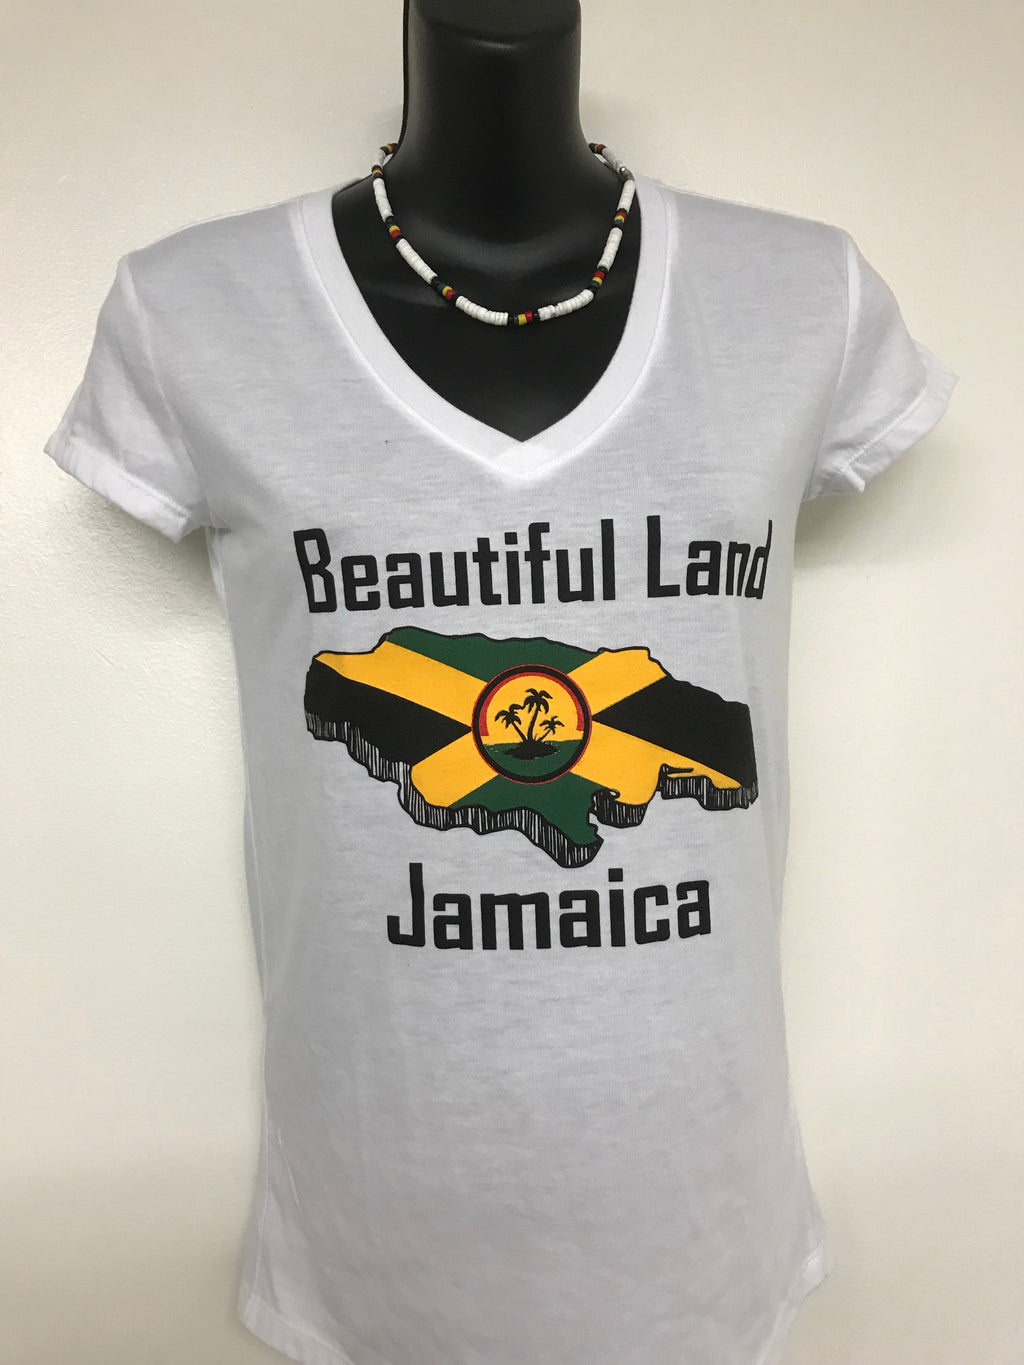 Jamaican woman's T-shirt. Beautiful land Jamaica (Wholesale)